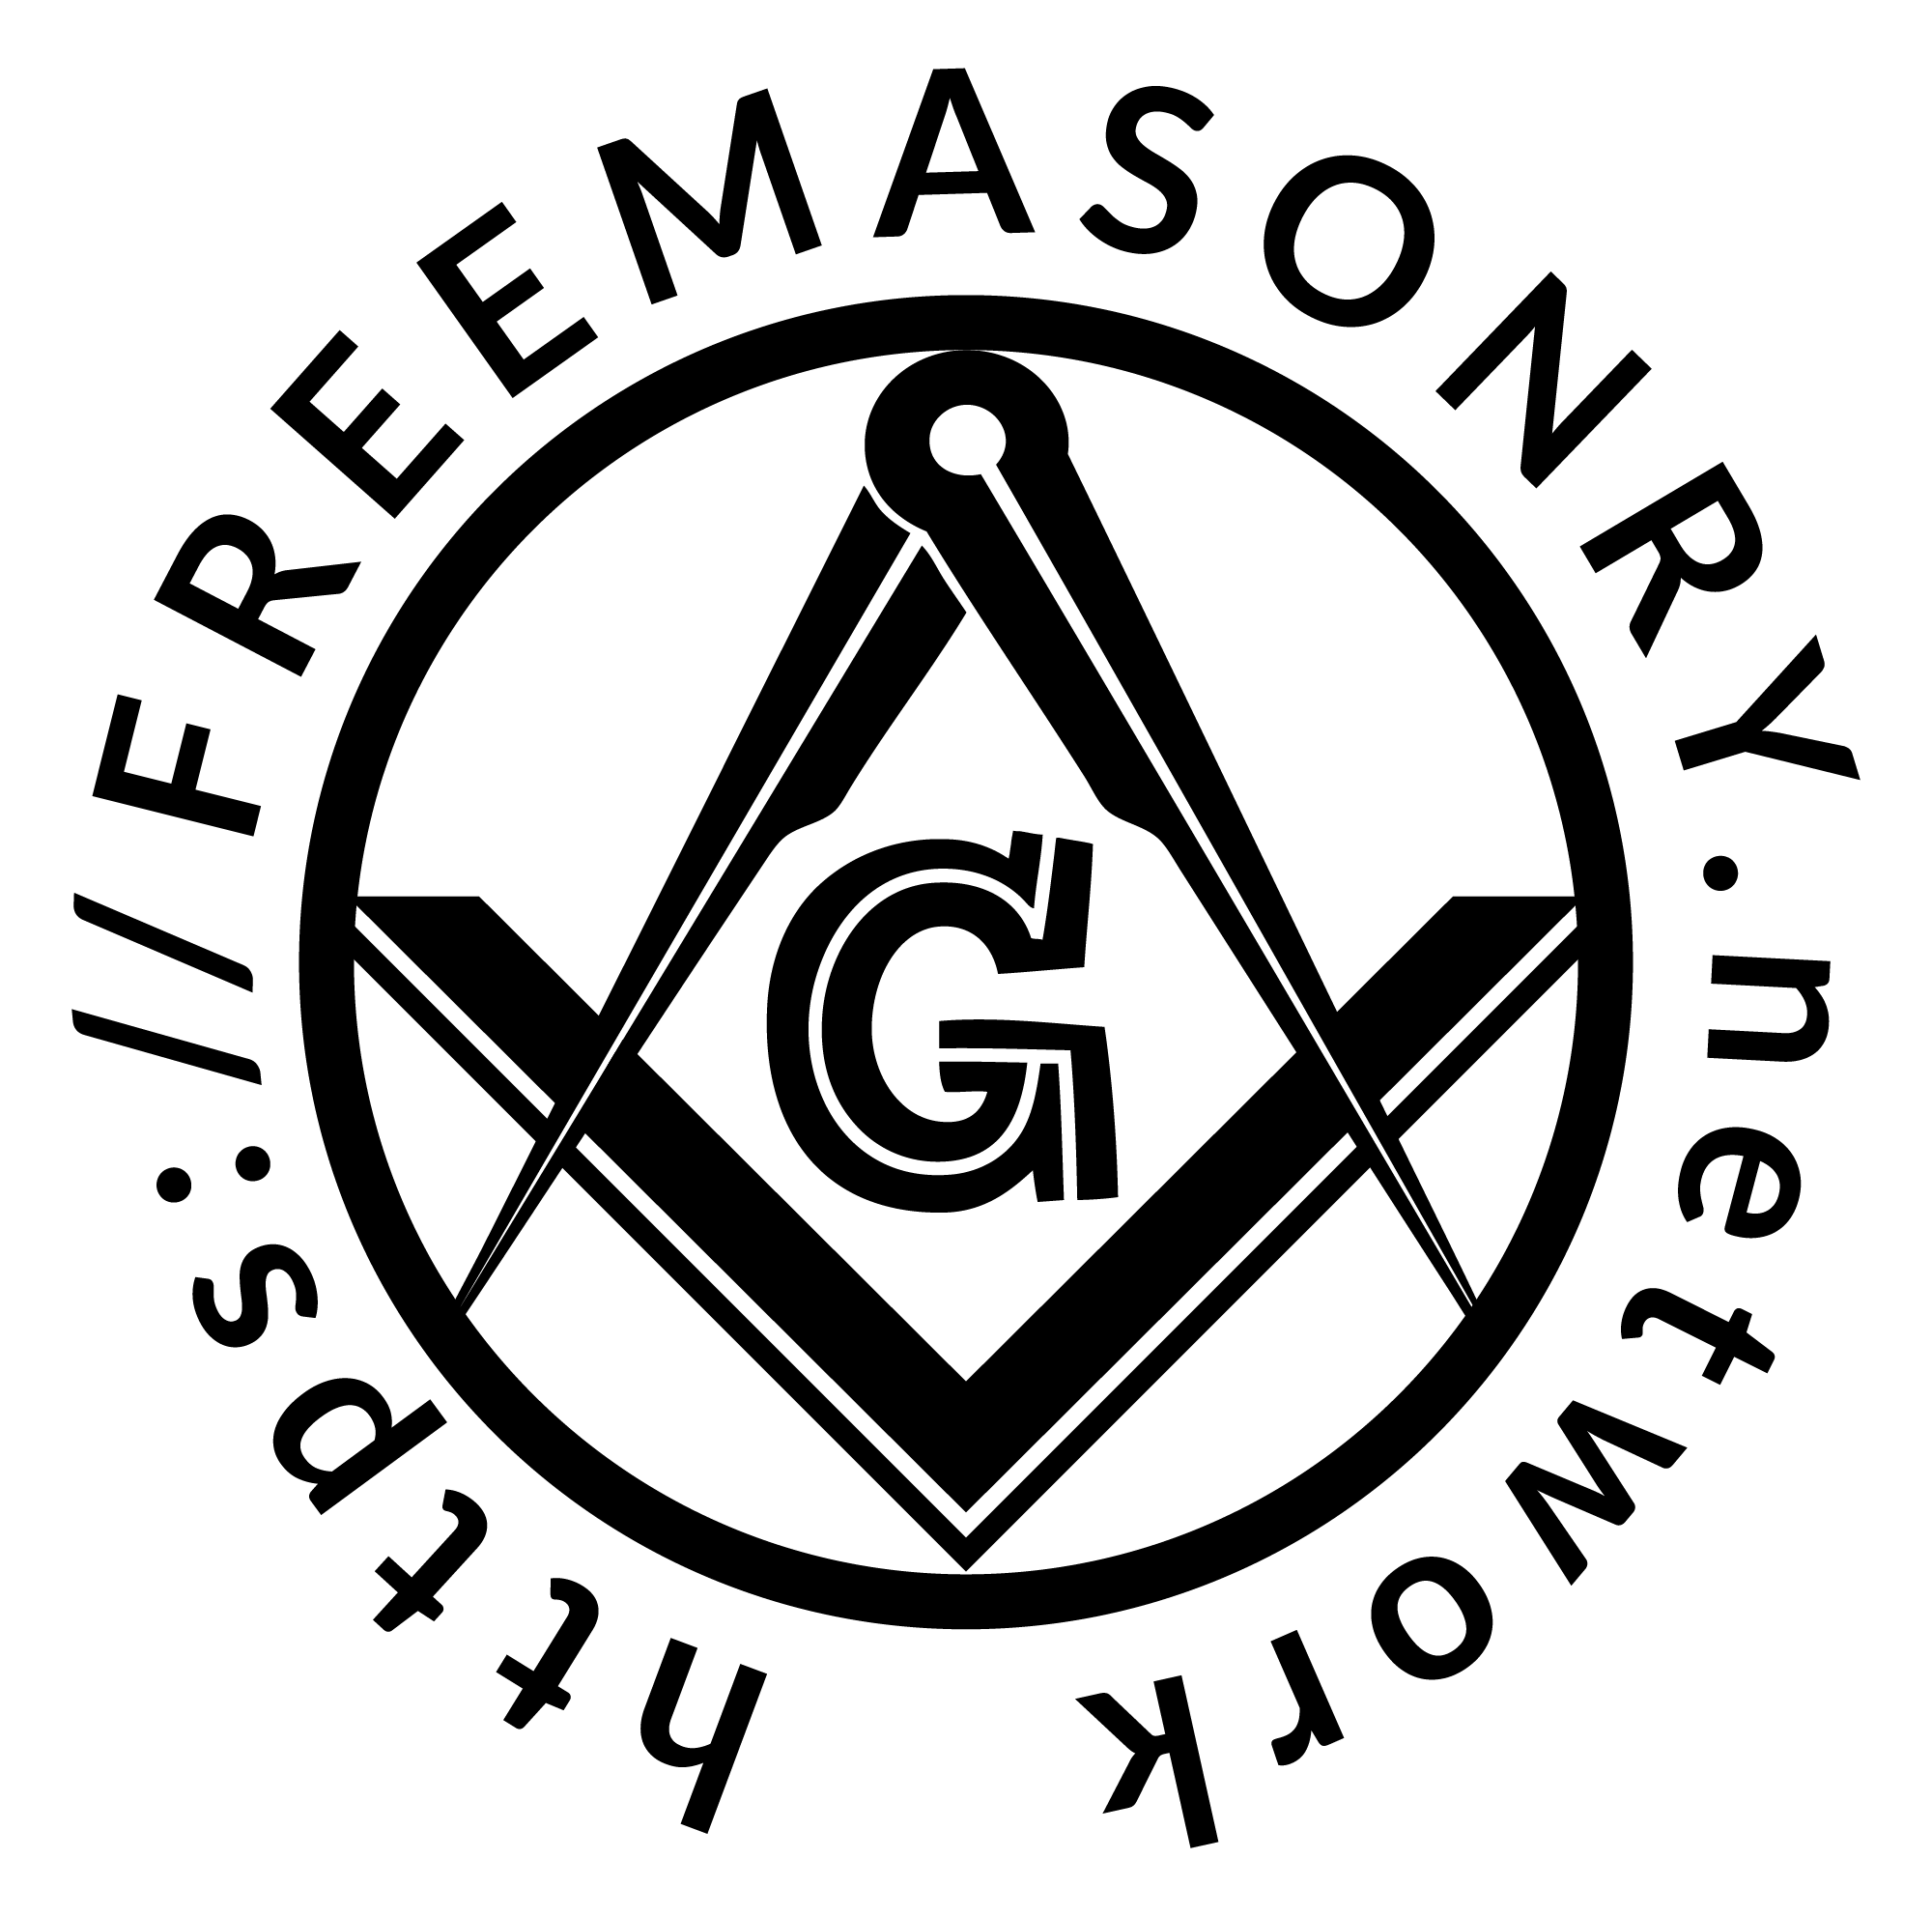 MASONIC TEMPLES HEYDAY AND DECLINE